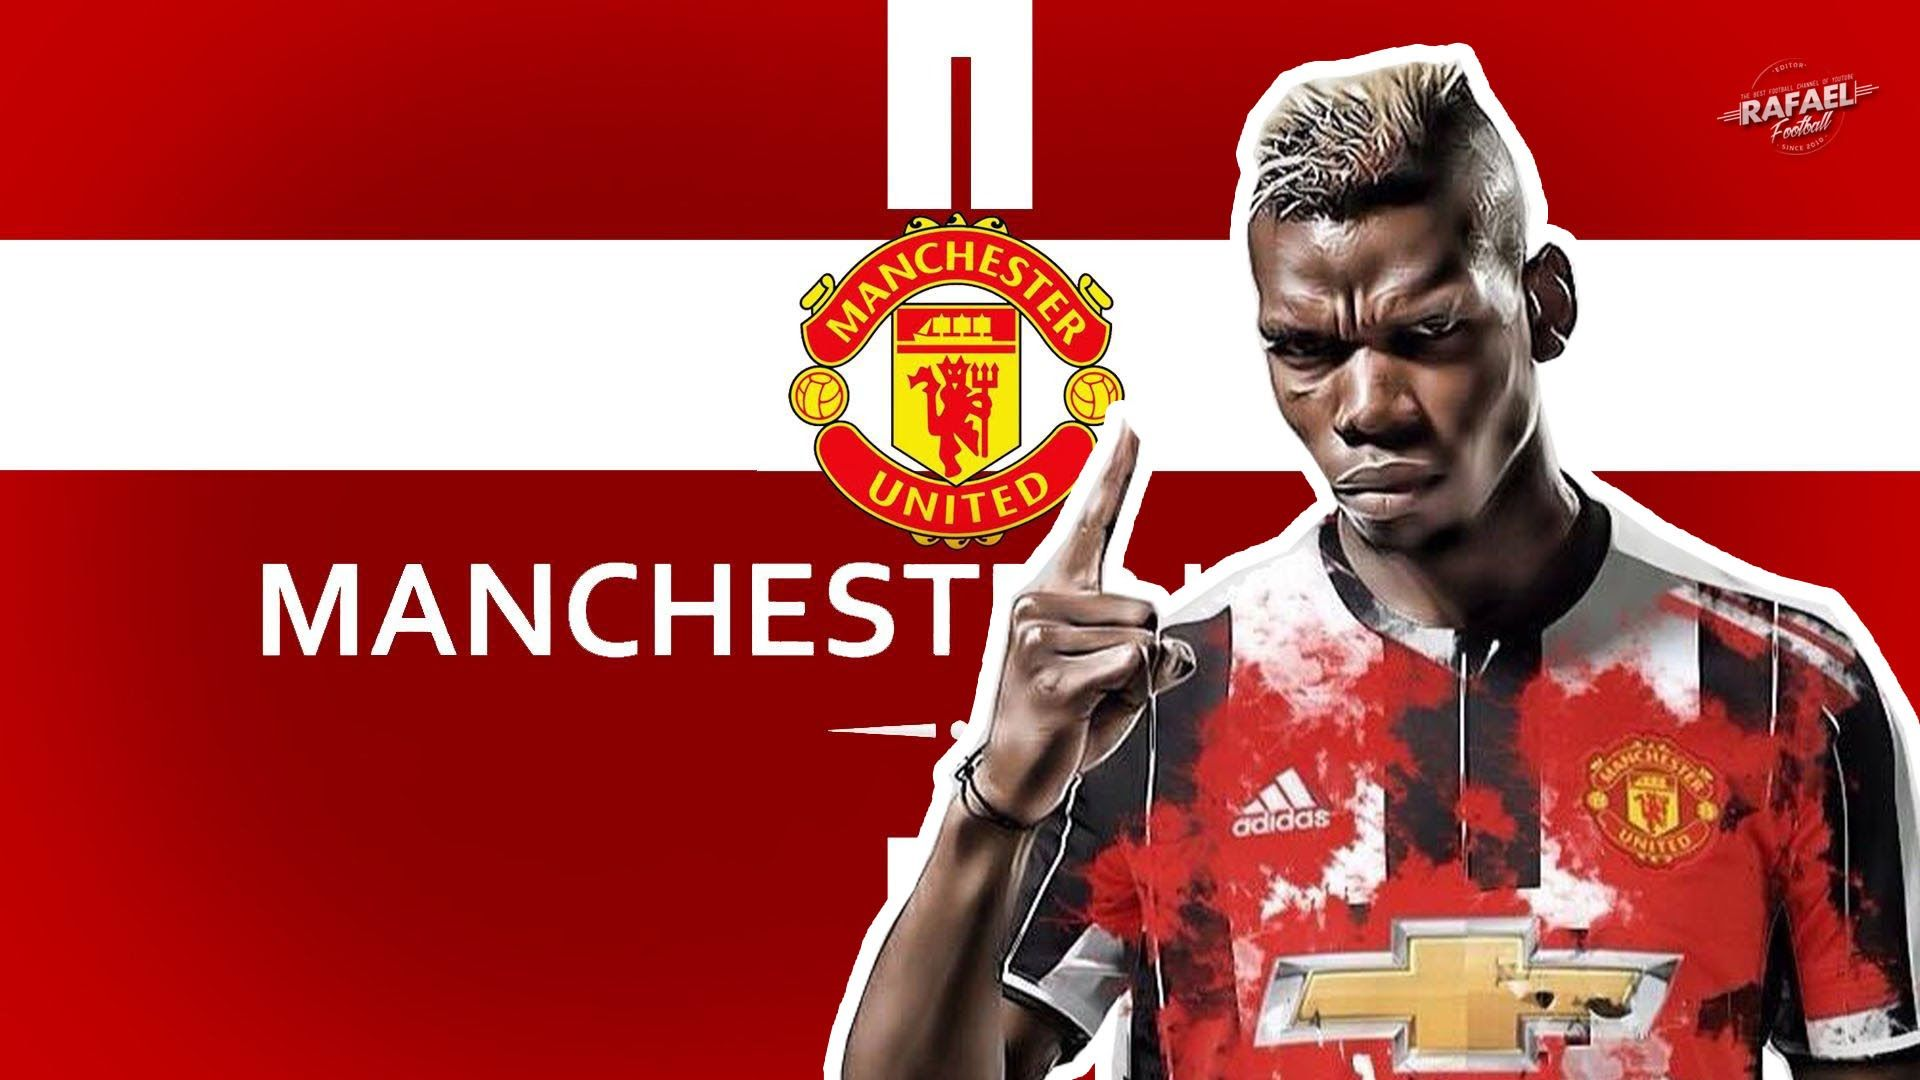 55 Pogba Man Utd Wallpapers   Download at WallpaperBro 1920x1080